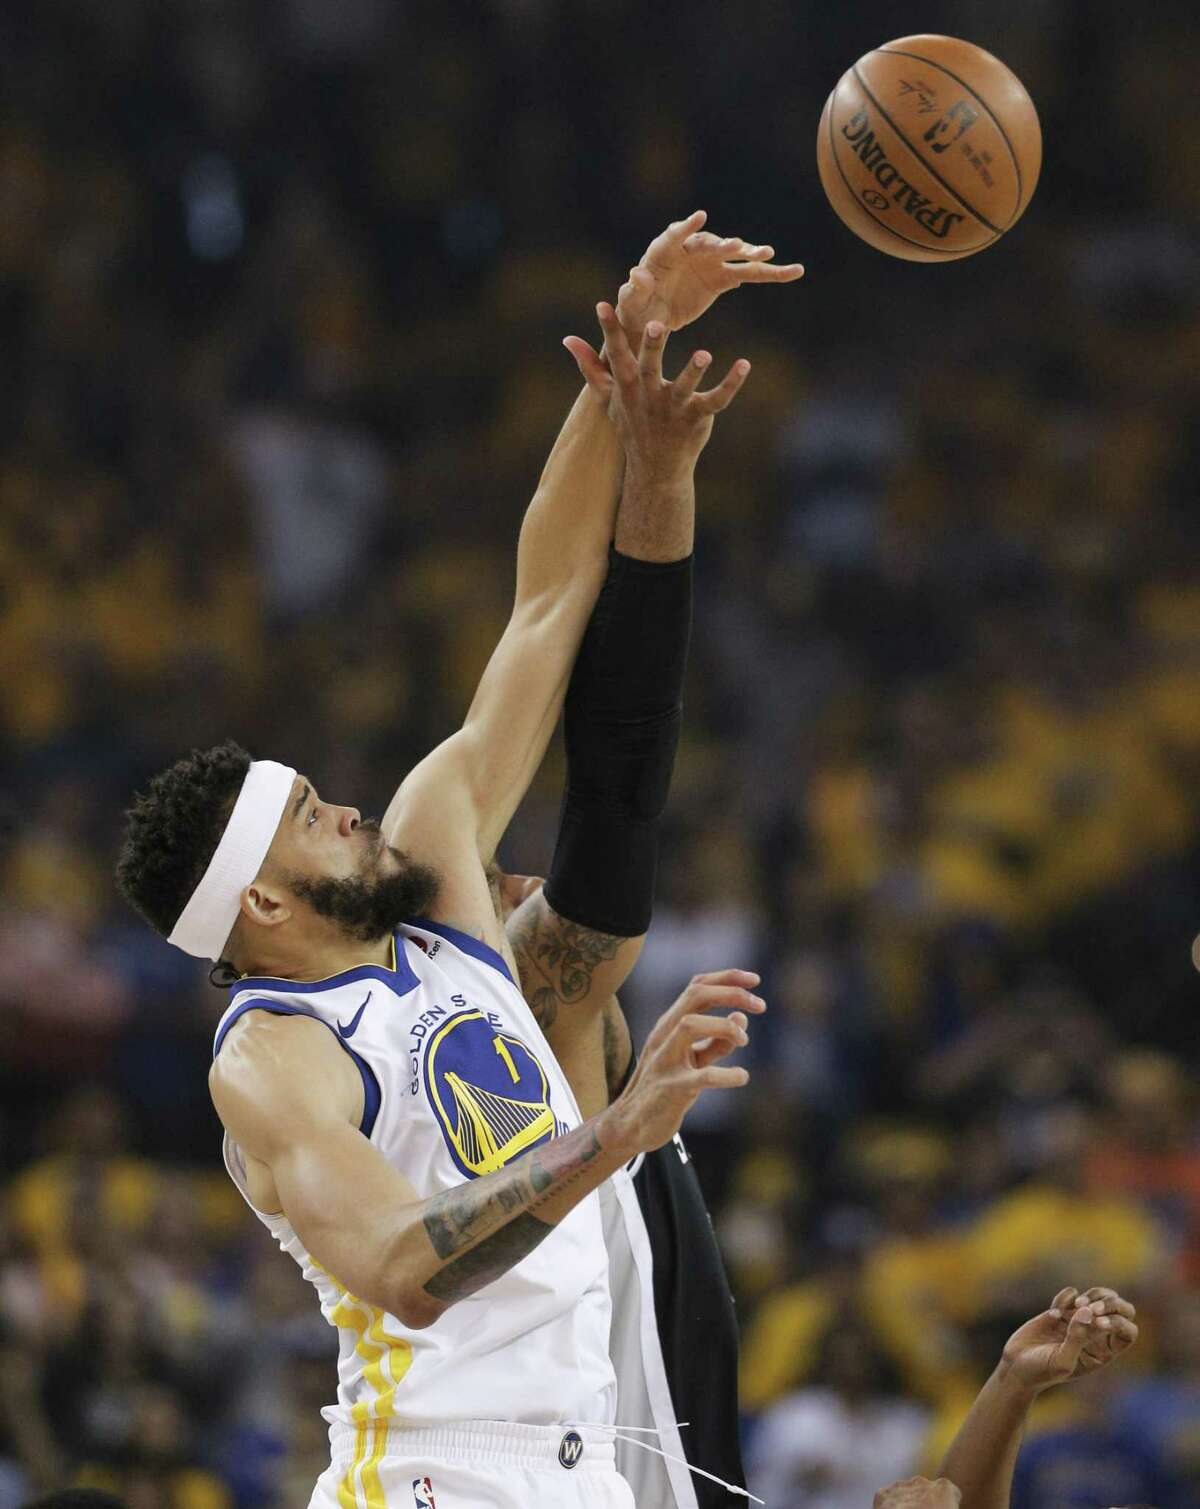 Golden State Warriors' JaVale McGee goes up against San Antonio Spurs' LaMarcus Aldridge for the opening tipoff during game 1 of round 1 of the Western Conference Finals at Oracle Arena on Saturday, April 14, 2018 in Oakland, Calif.